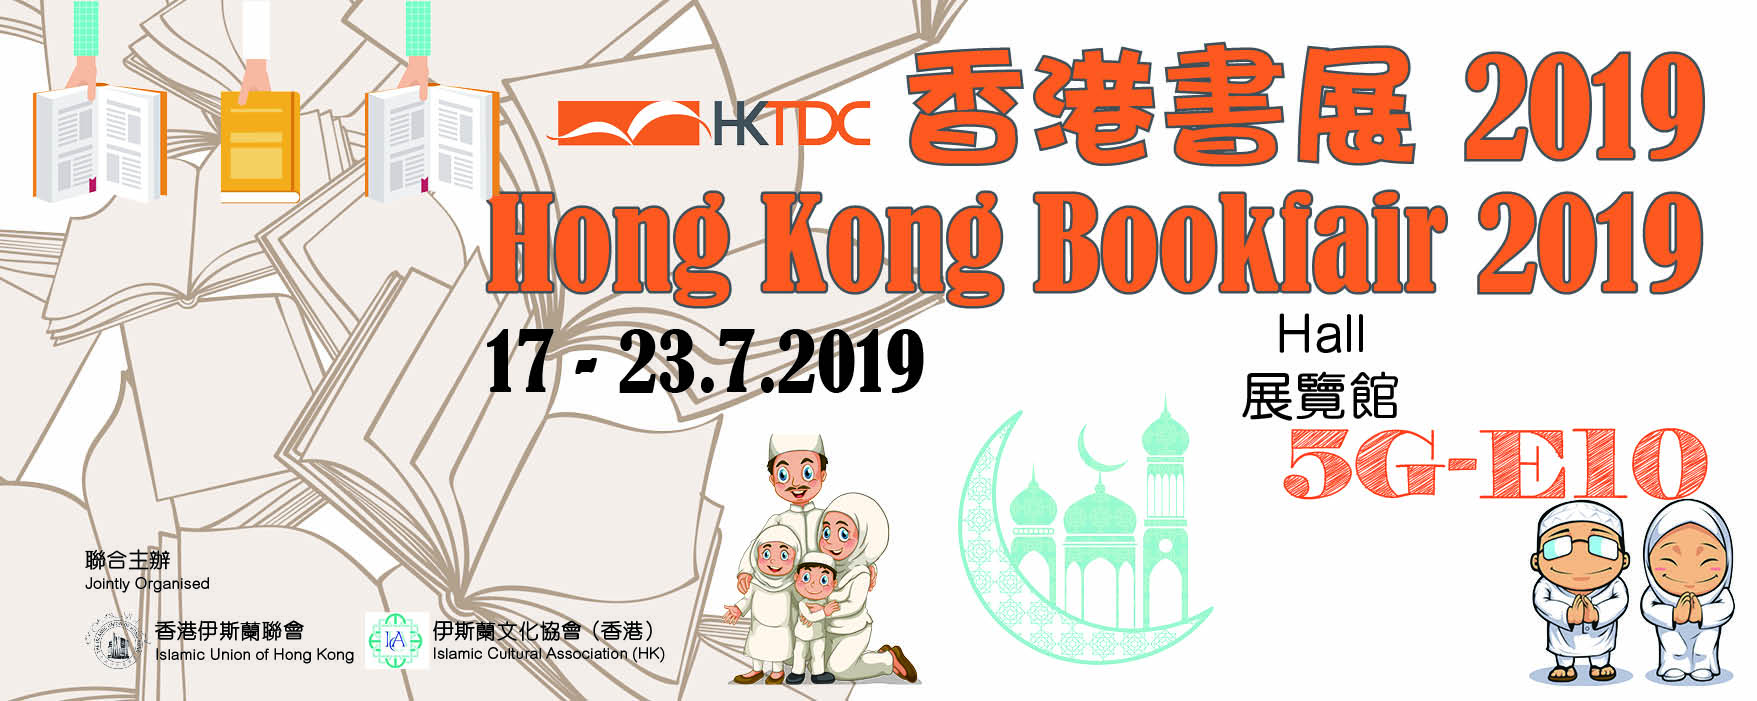 Hong Kong Bookfair 2019